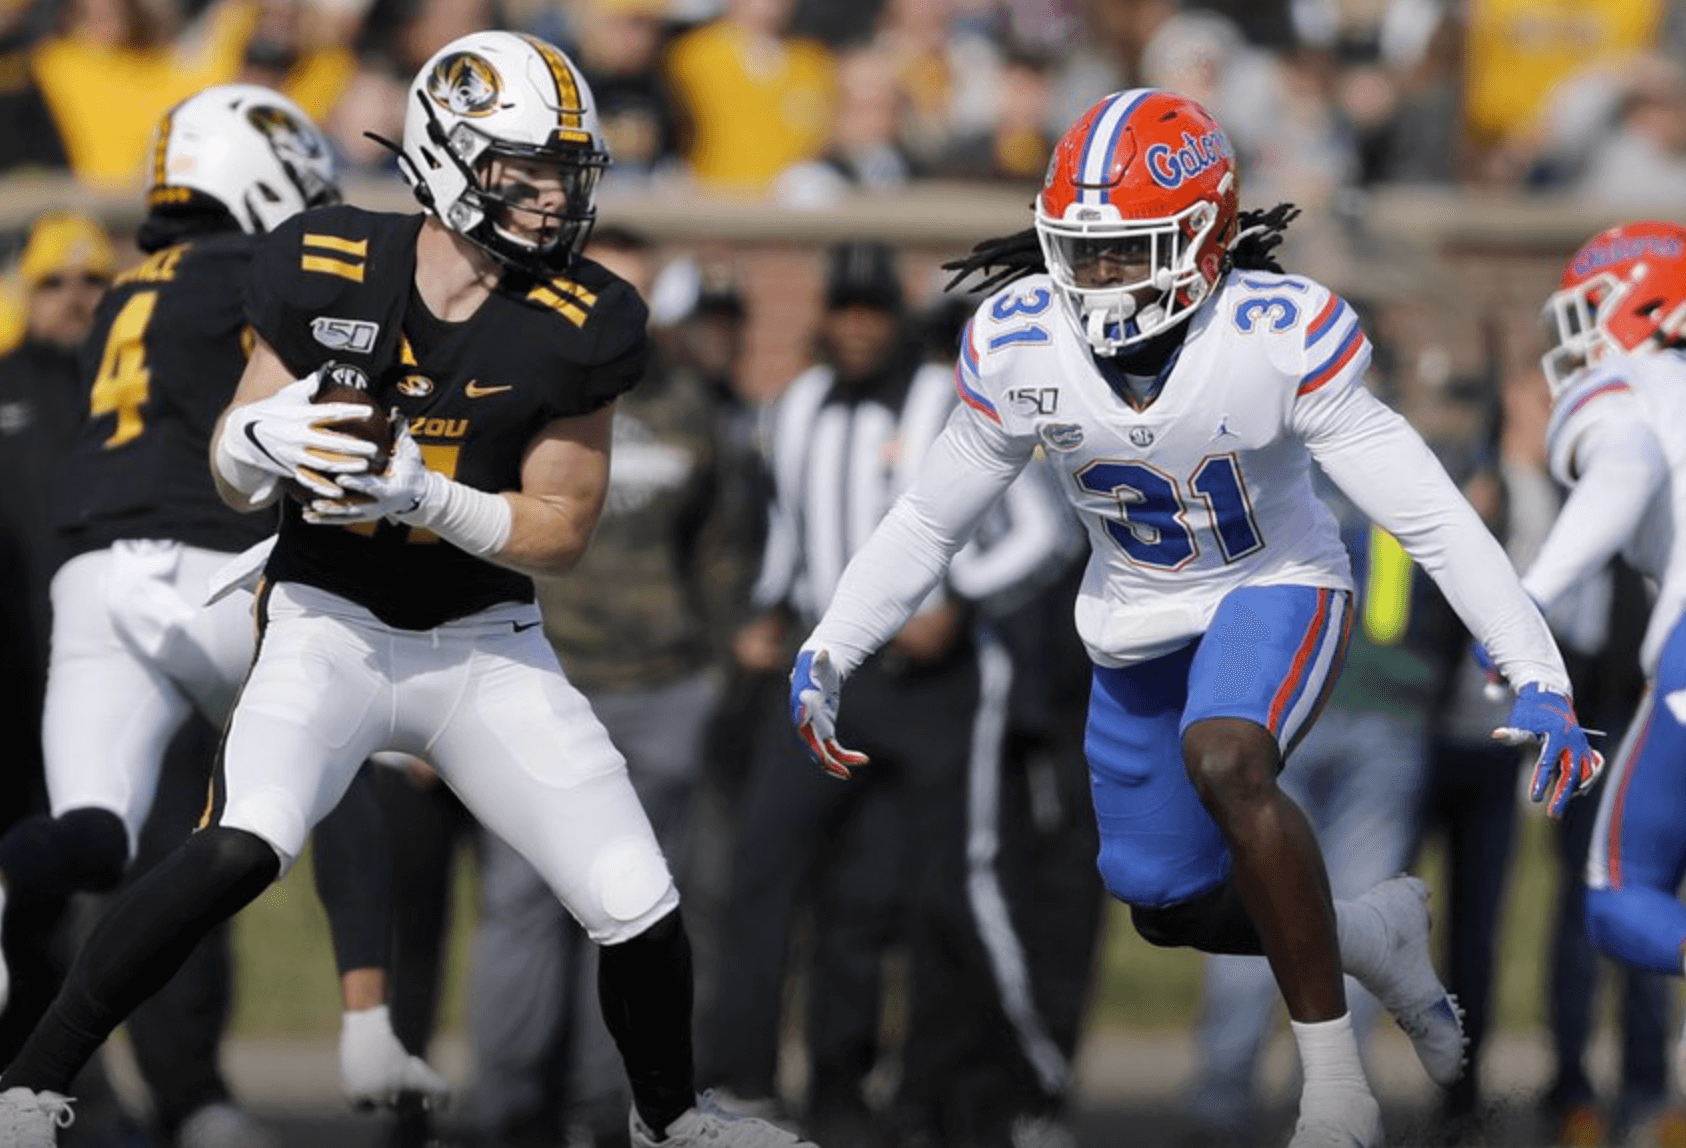 Florida-Missouri game